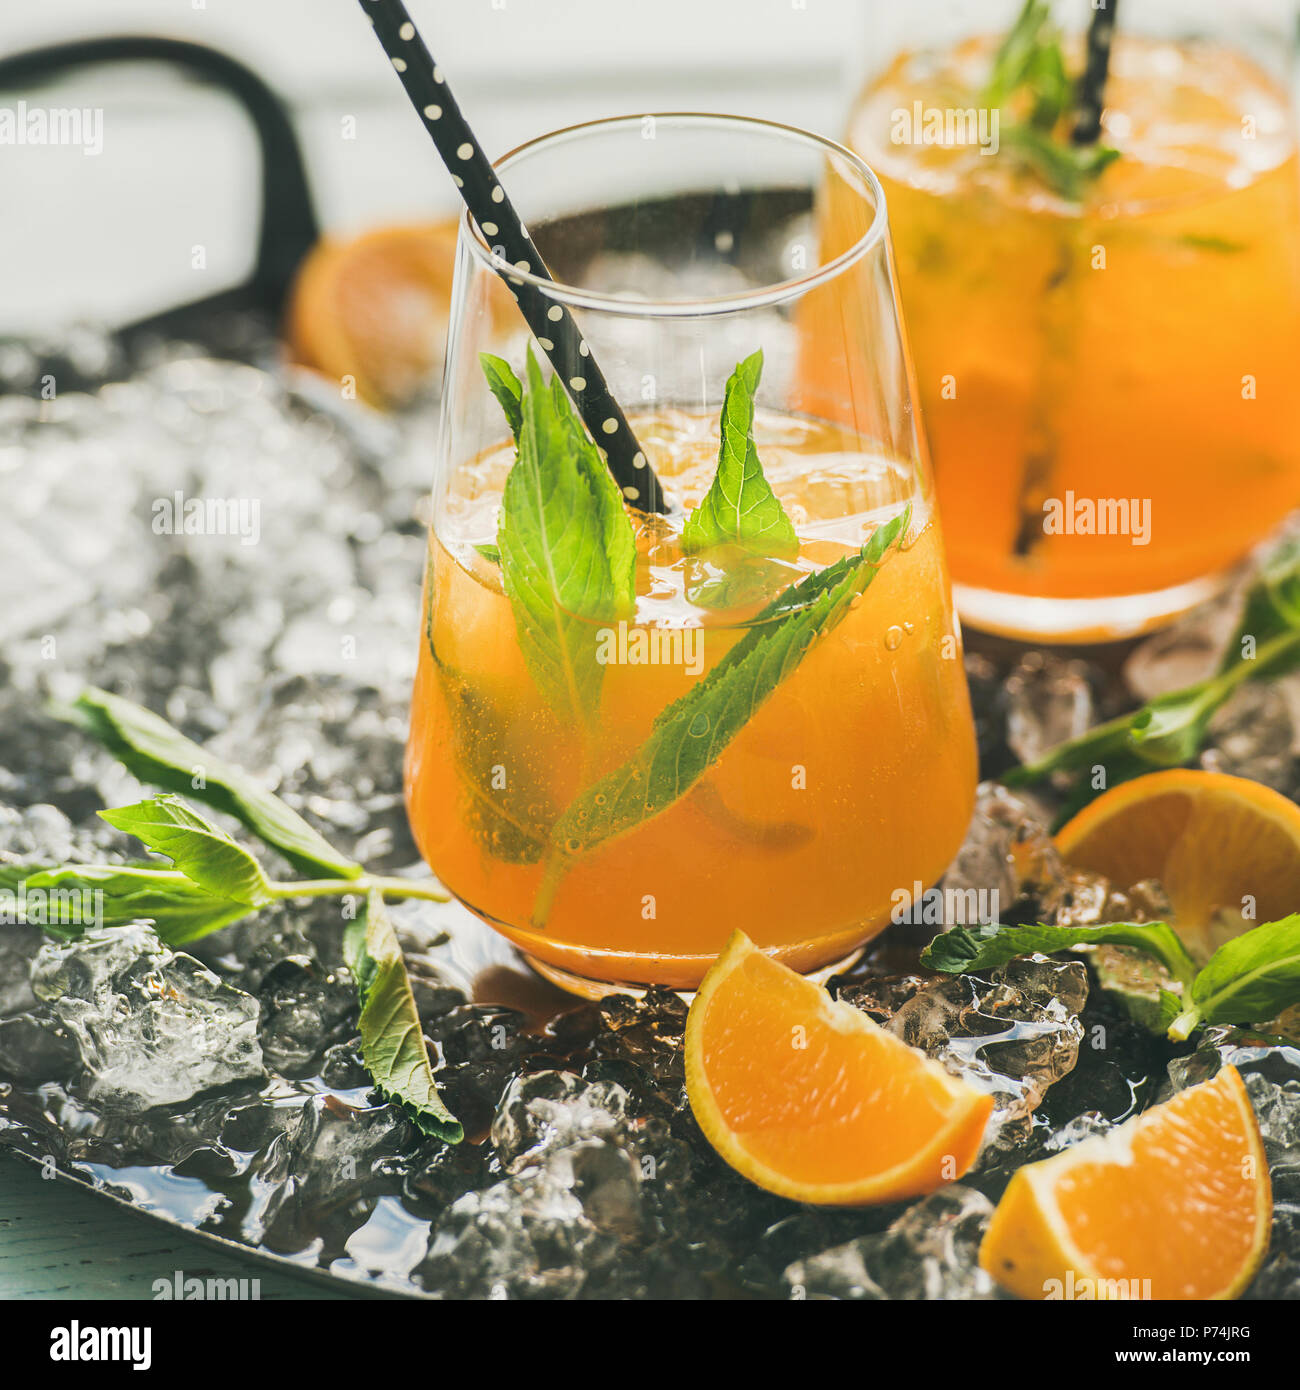 Refreshing cold alcoholic summer citrus cocktail with orange, peppermint and ice in stemless glasses on dark tray over light blue wooden table backgro - Stock Image